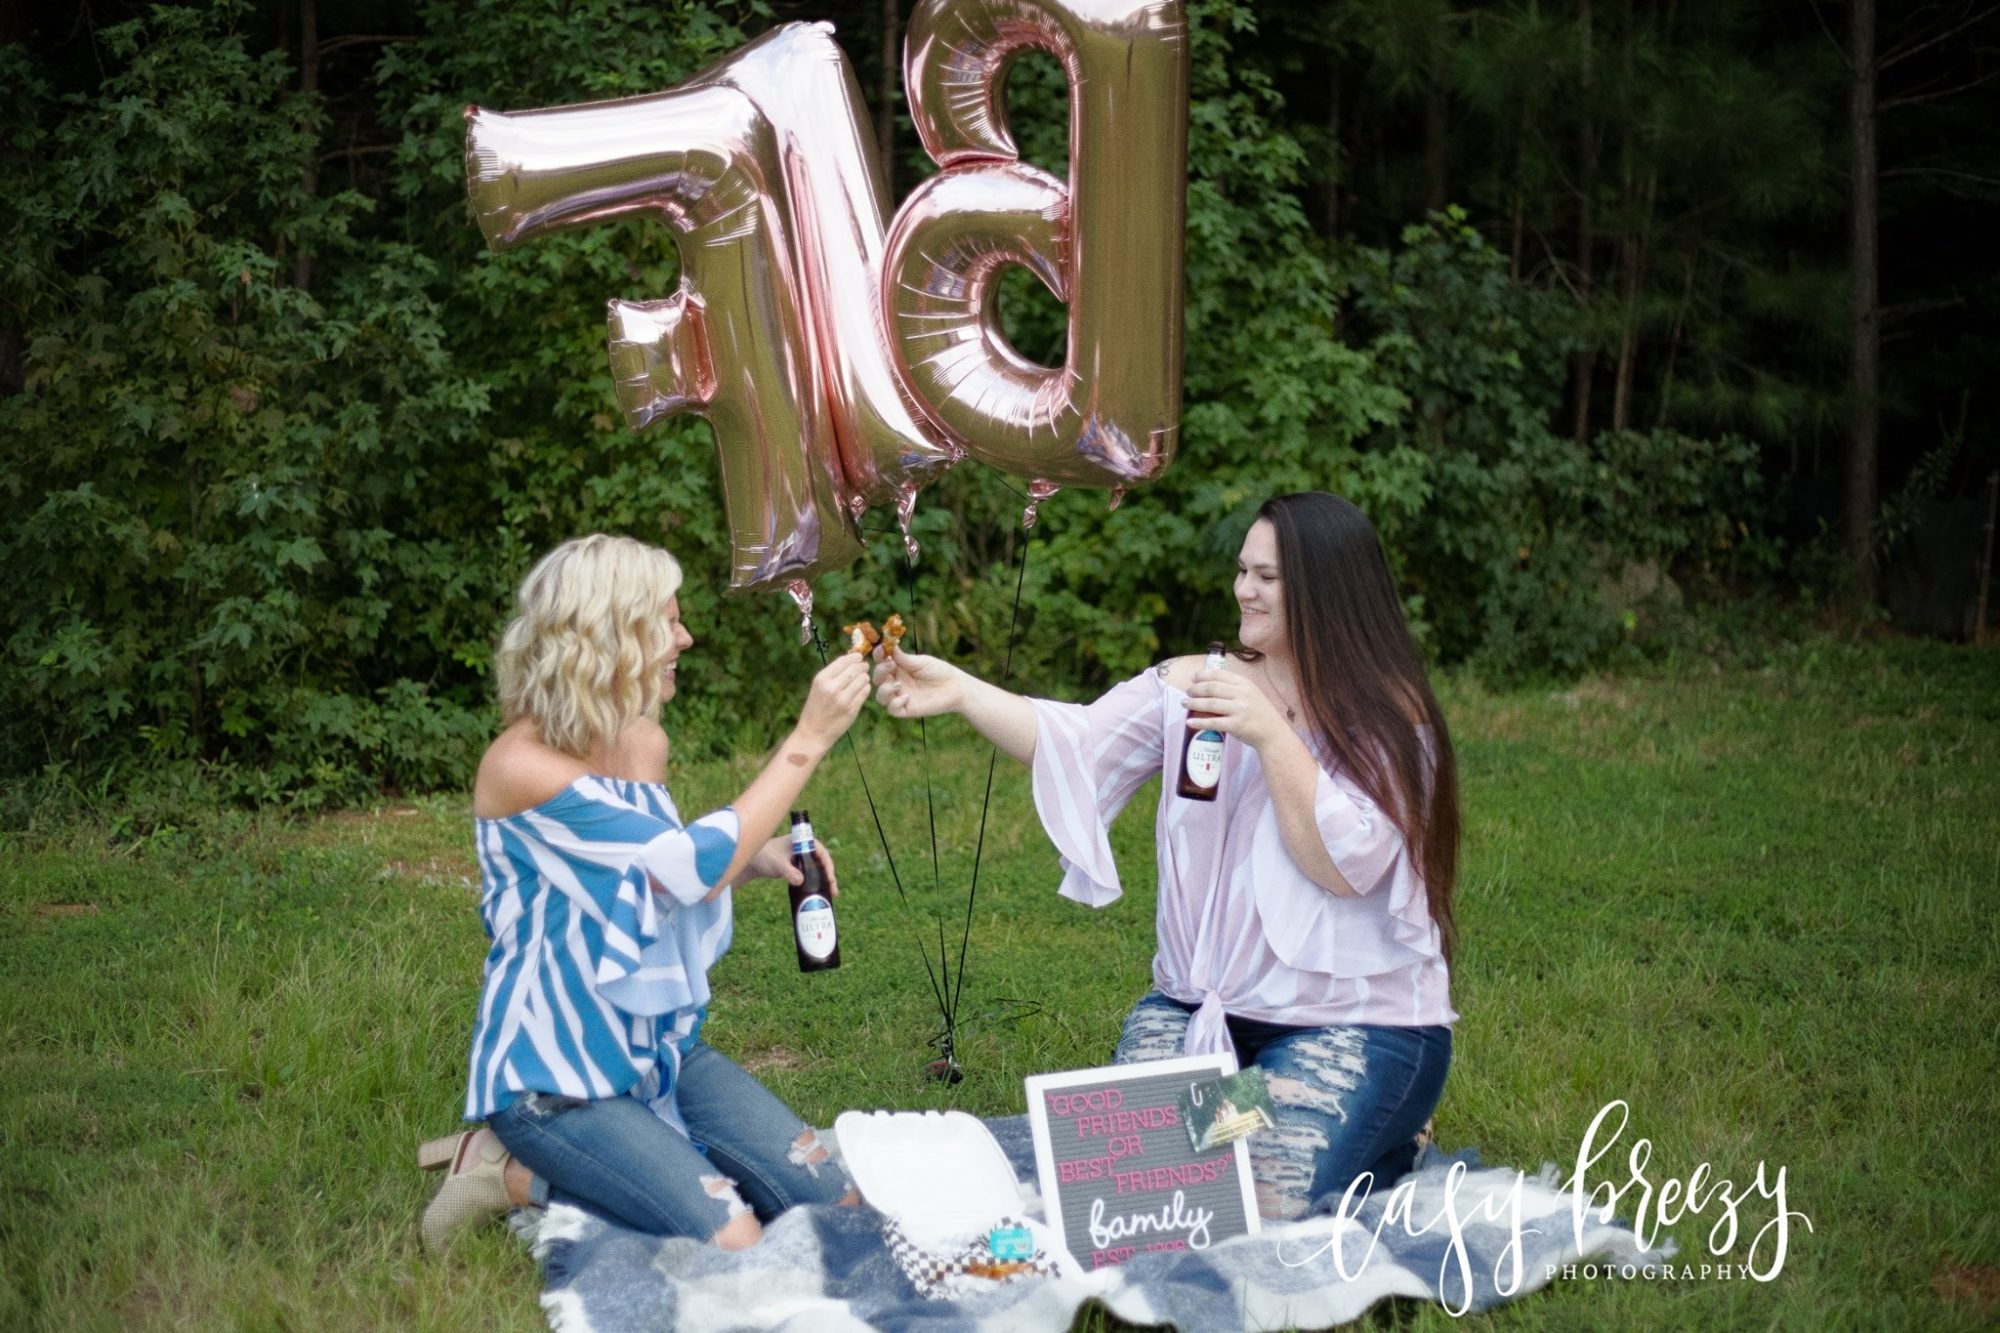 Women Create Photo Shoot With Chicken And Beer To Celebrate Friendship People Com Download and use 10,000+ happy birthday stock photos for free. women create photo shoot with chicken